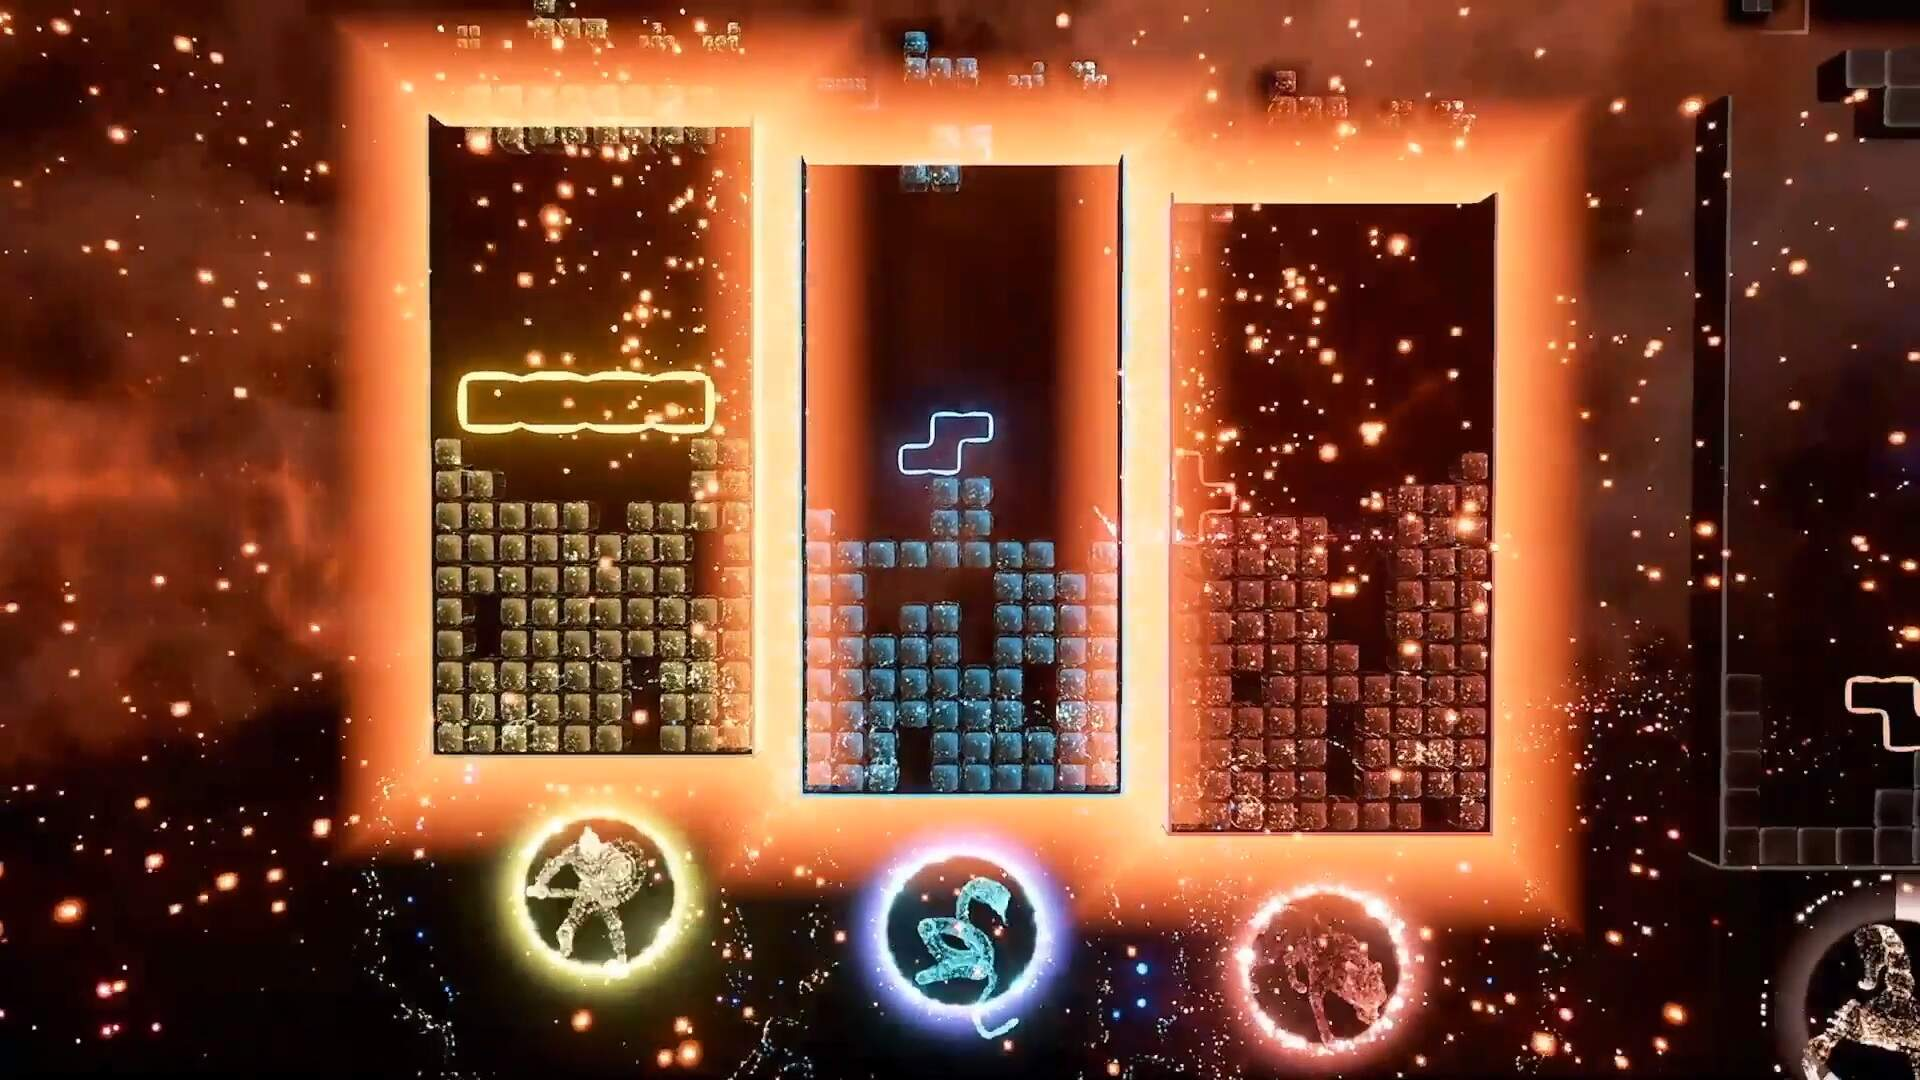 Tetris Effect Is Getting Multiplayer This Holiday as a Timed Xbox and PC Exclusive Update